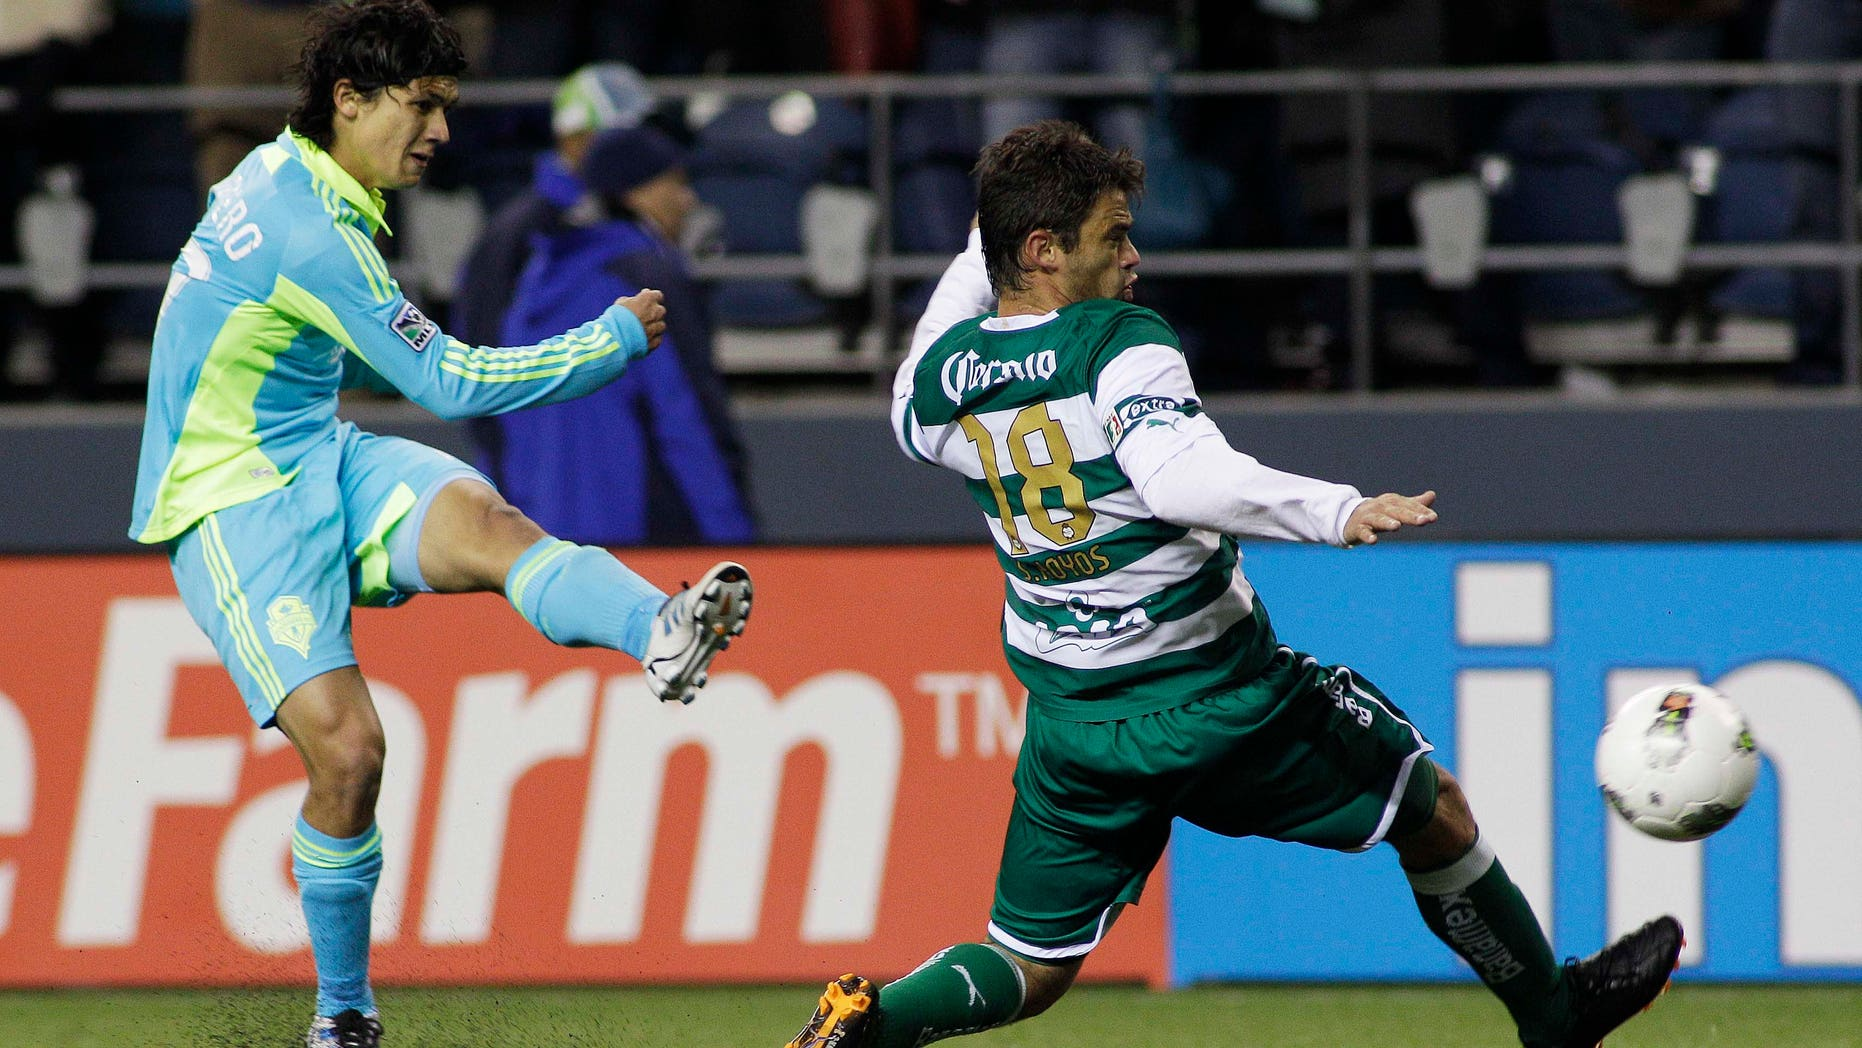 Seattle Sounders FC's Fredy Montero, left, shoots past Santos Laguna's Santiago Hoyos in the second half of a CONCACAF Champions League quarterfinal soccer match, Wednesday, March 7, 2012, in Seattle. The Sounders beat Santos, 2-1.